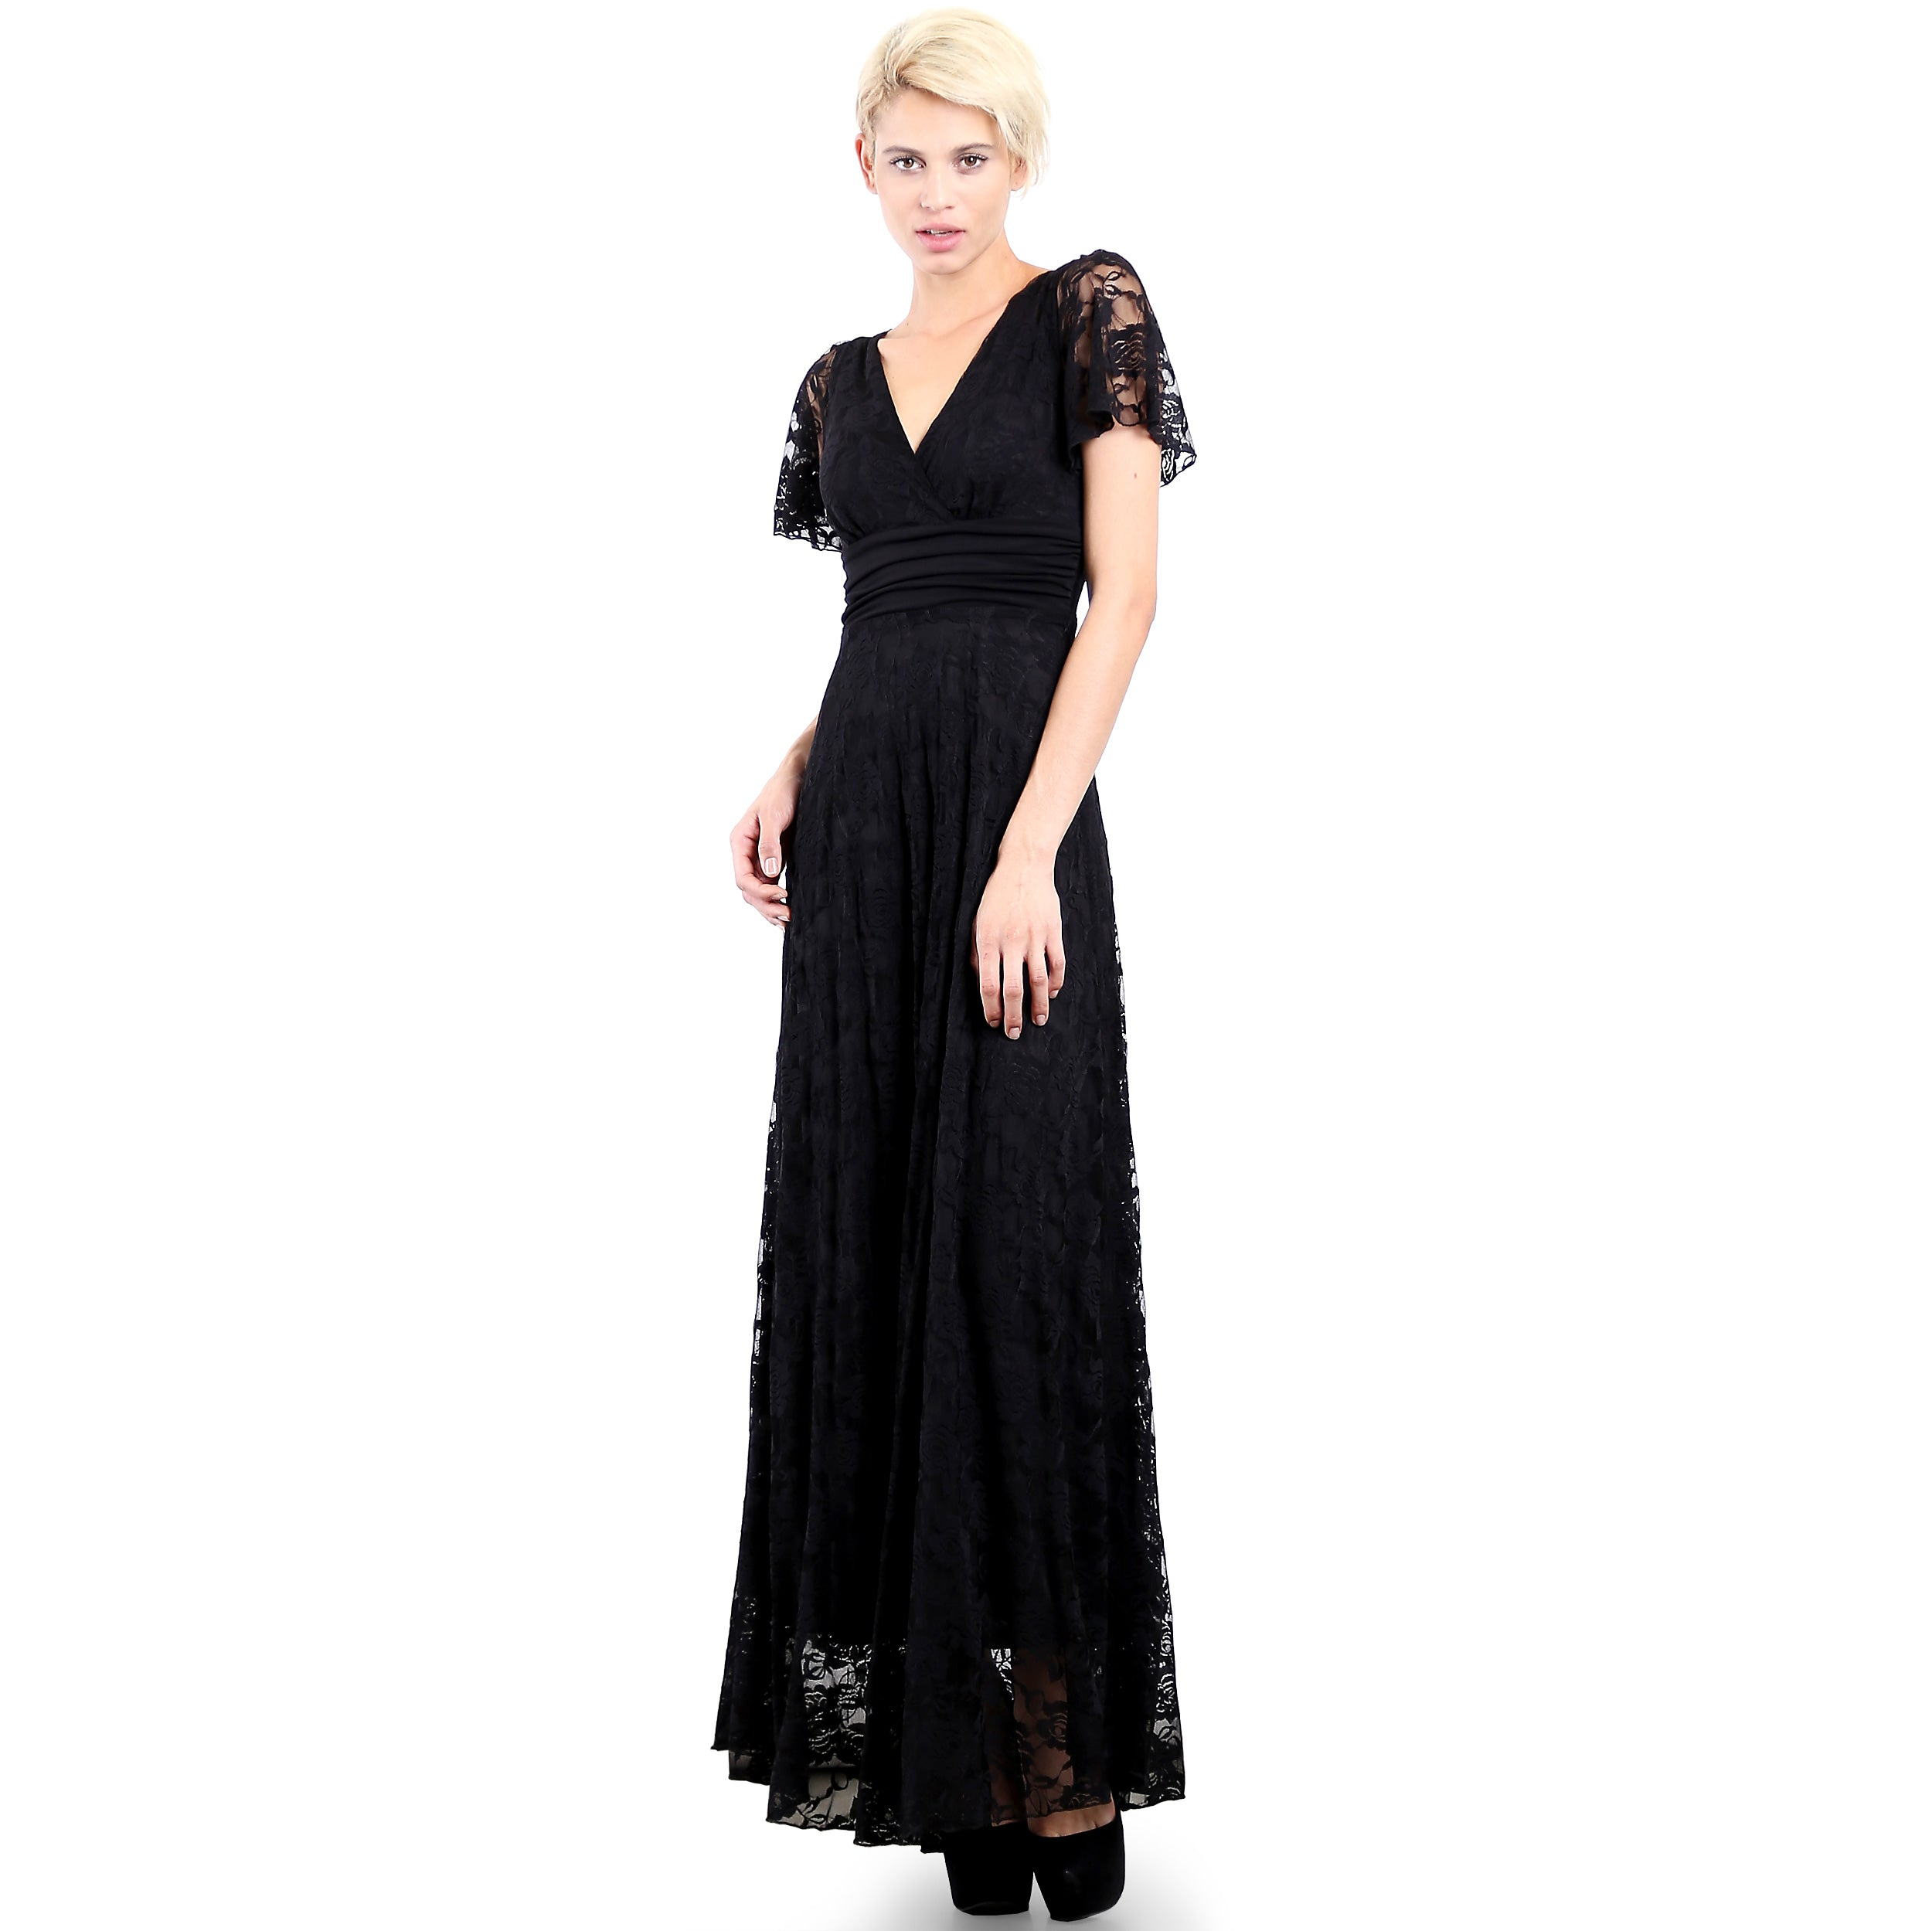 Evanese Women\'s Plus Size Formal Party Lace Long Dress Gown with ...